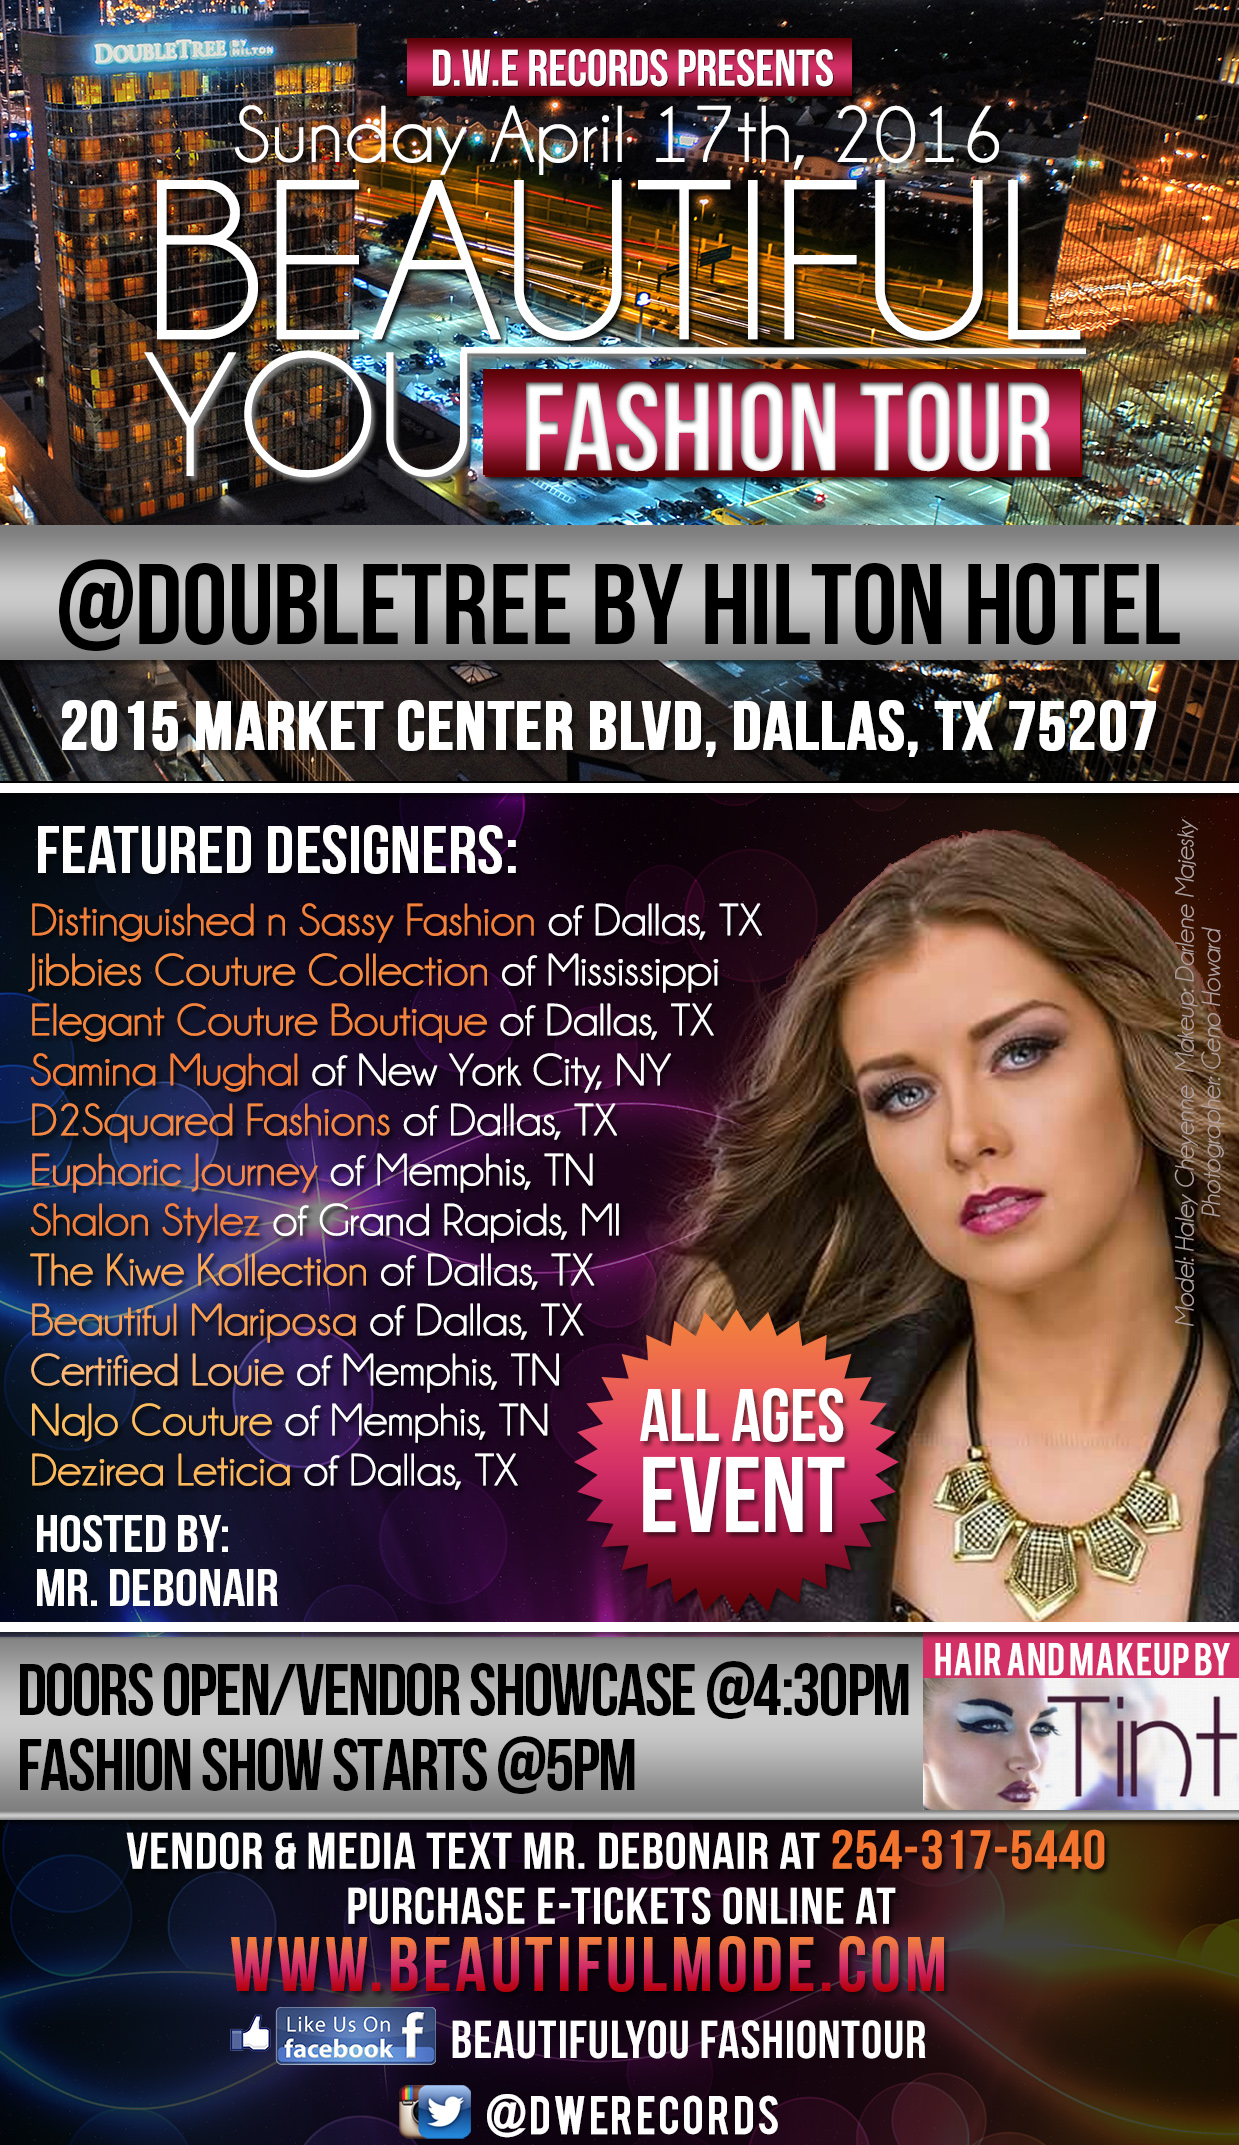 Dallas, TX</a><br> by <a href='/profile/Mr-Debonair-BYFT-Director/'>Mr. Debonair BYFT Director</a>